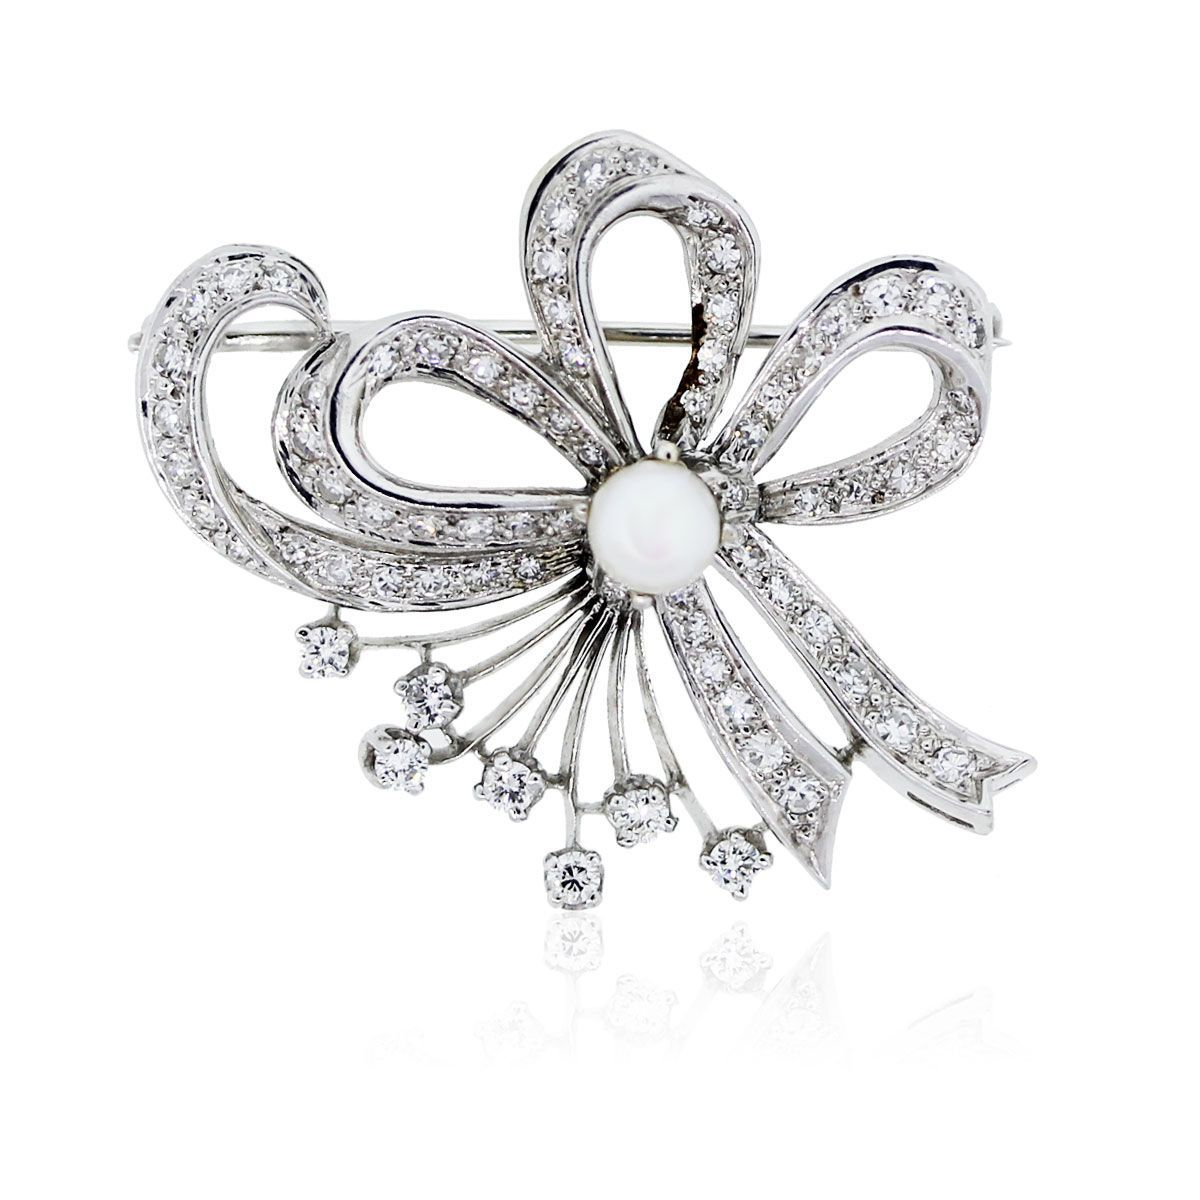 You are viewing this 14k White Gold With Diamonds and Pearl Pin!